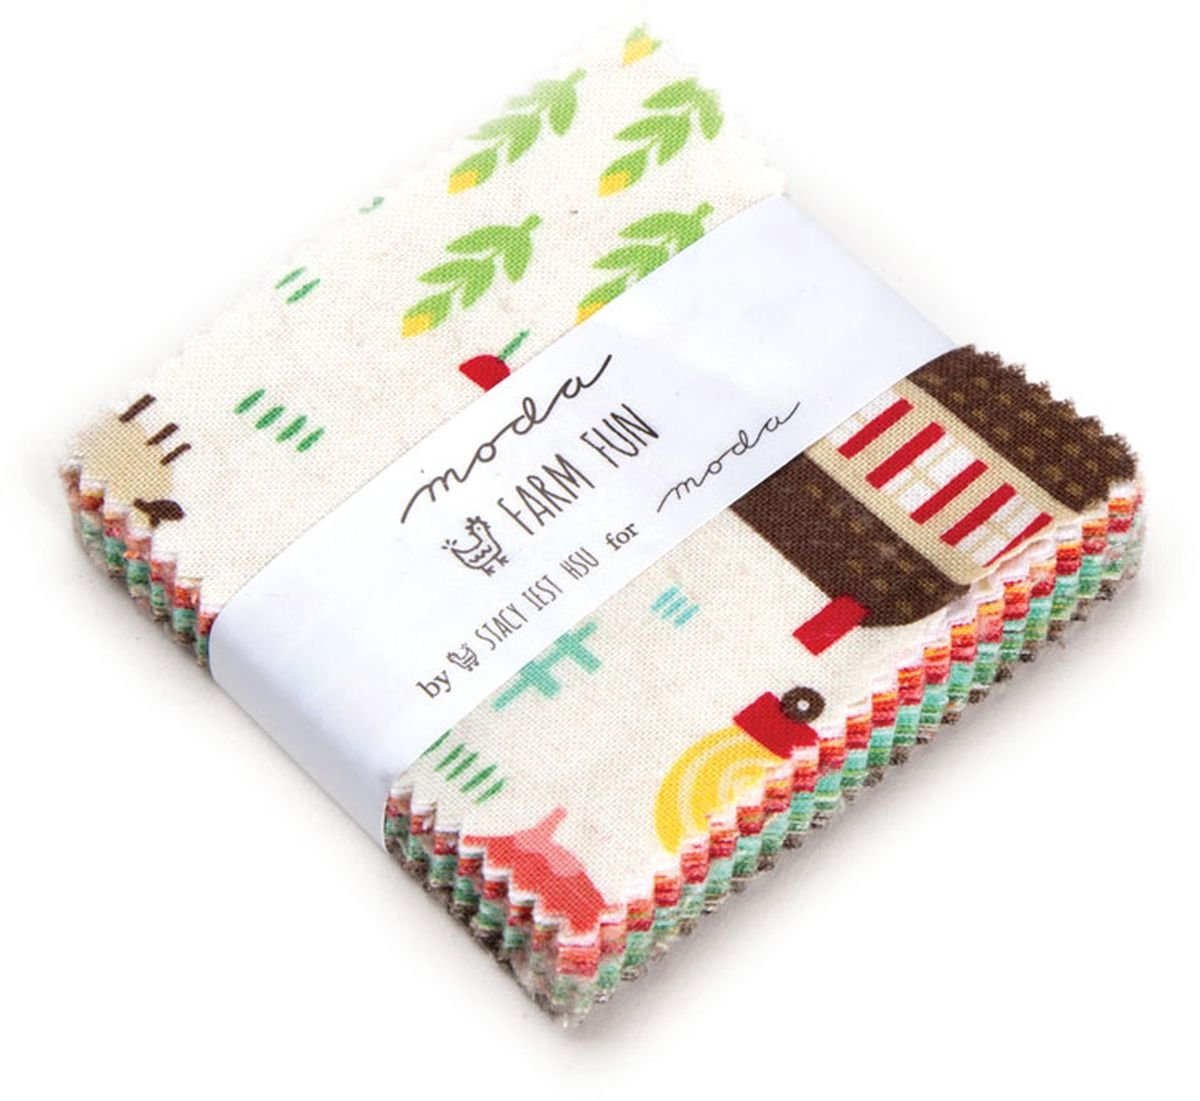 On The Farm Mini Charm Pack by Stacy Iest HSU; 42-2.5 Precut Fabric Quilt Squares